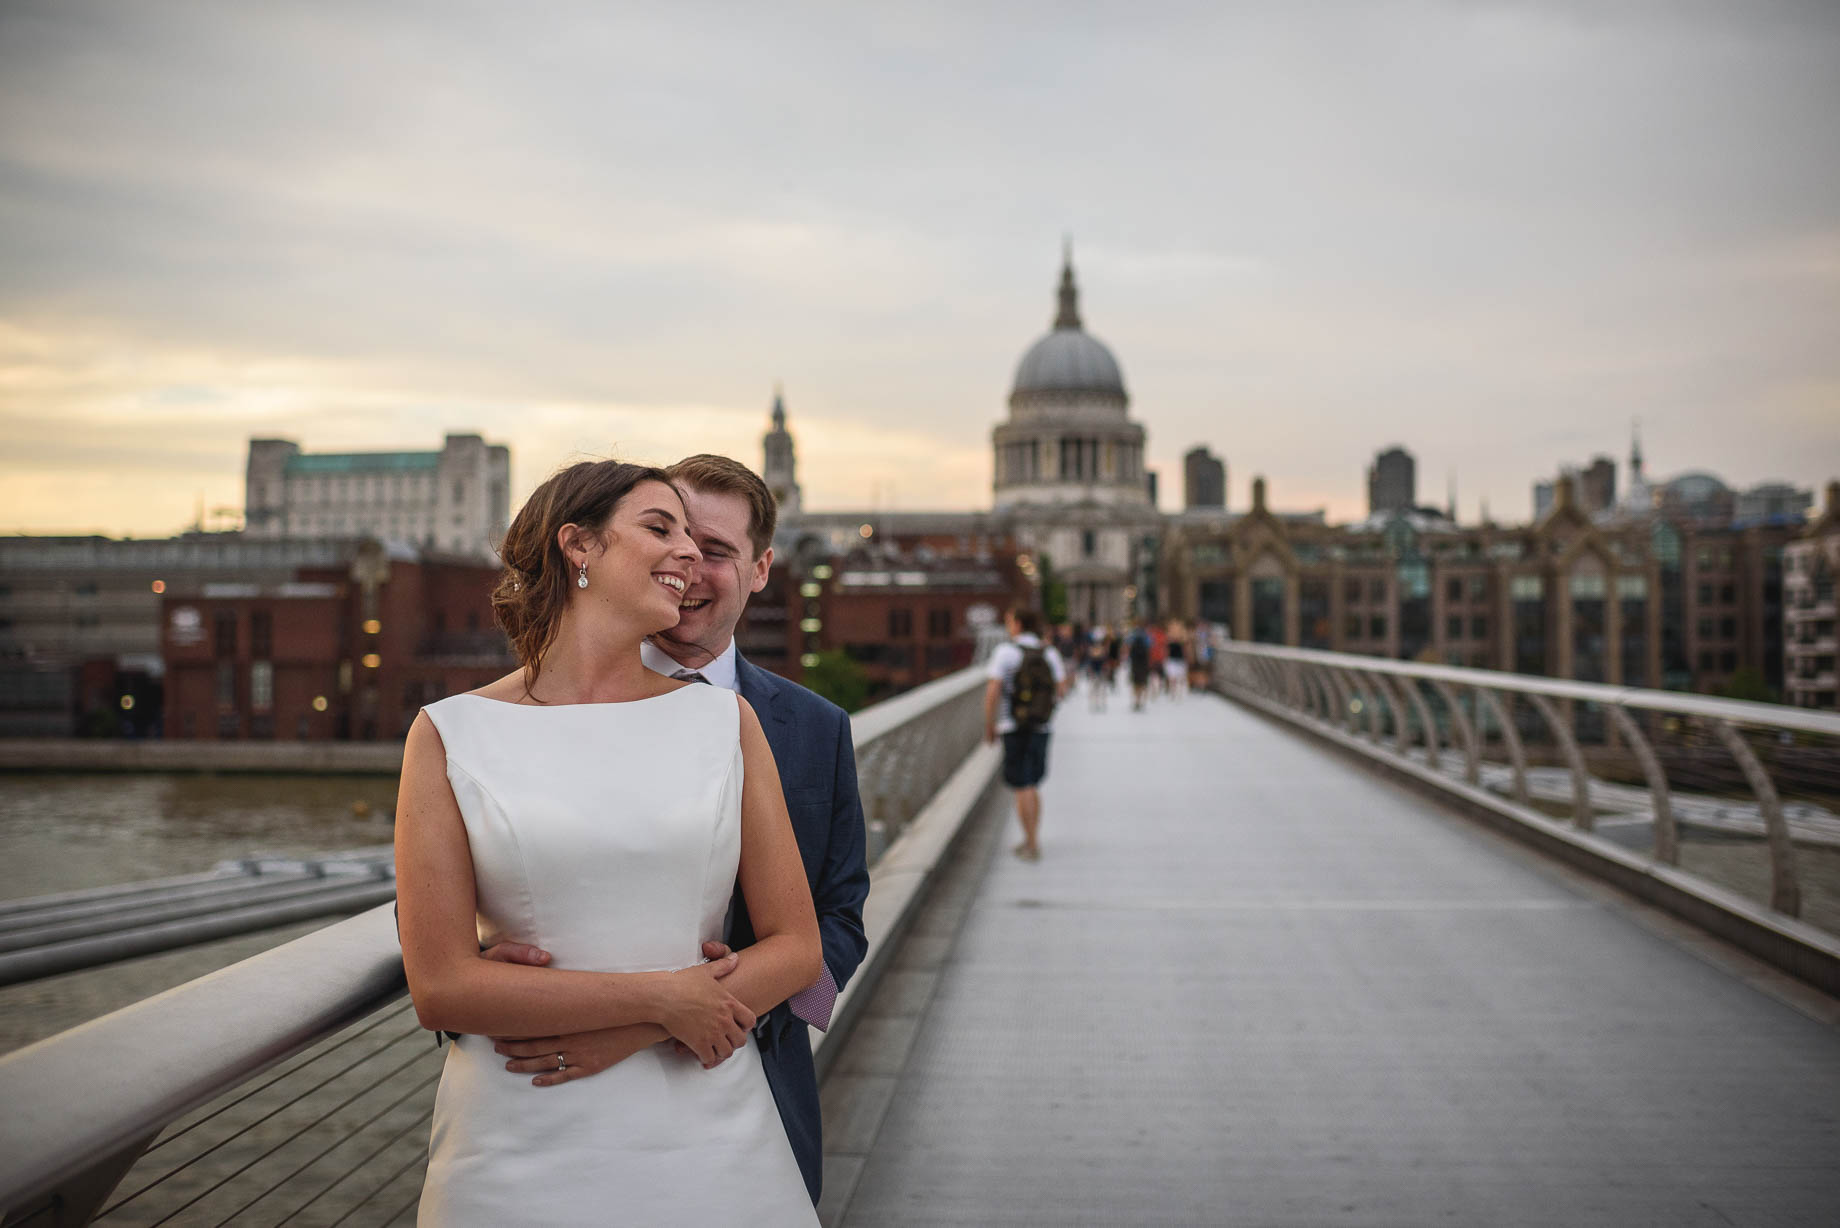 London wedding photography at The Globe - Conac + Conor